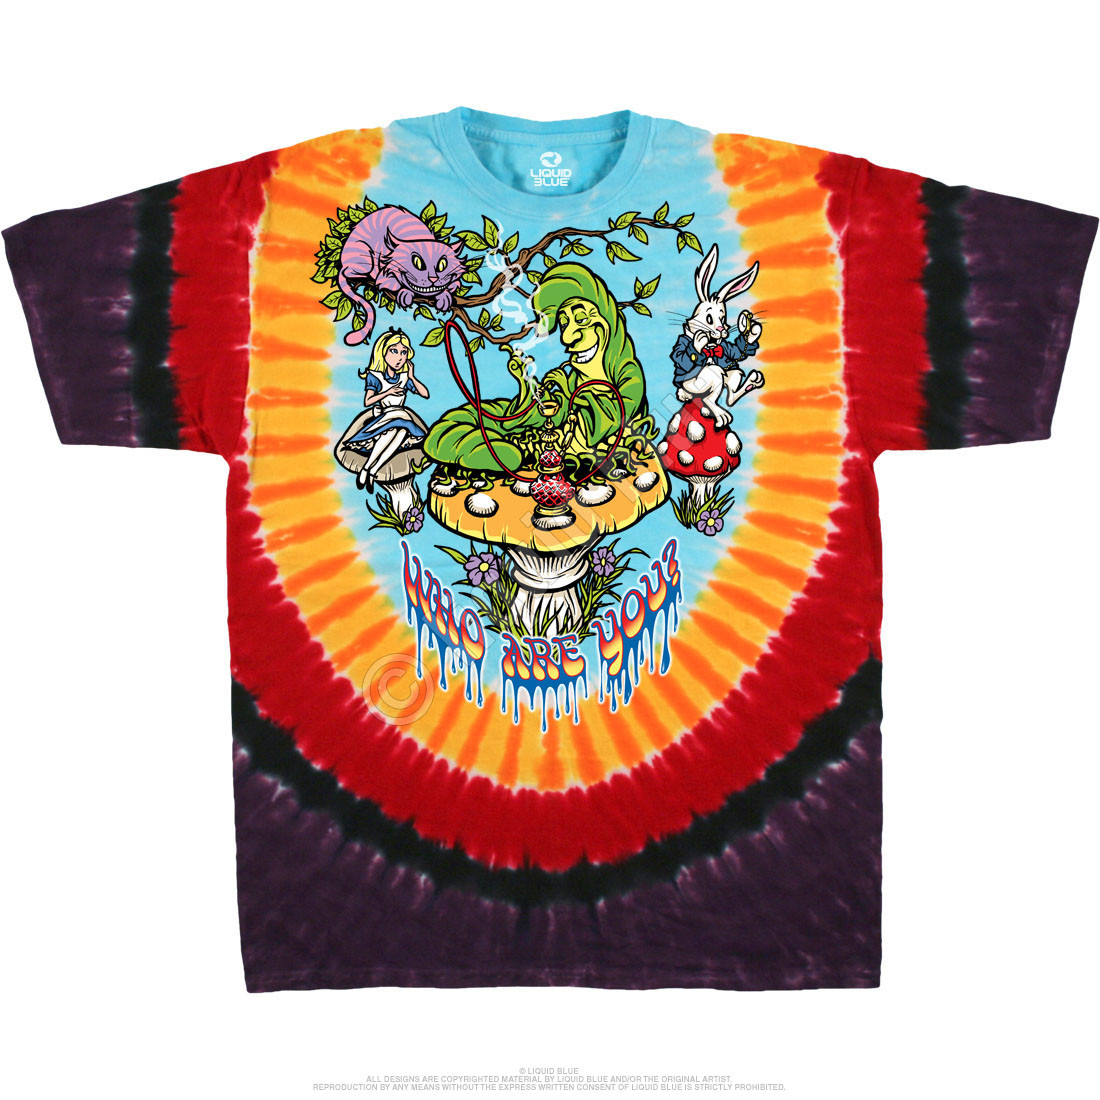 All Mad Here Tie-Dye T-Shirt